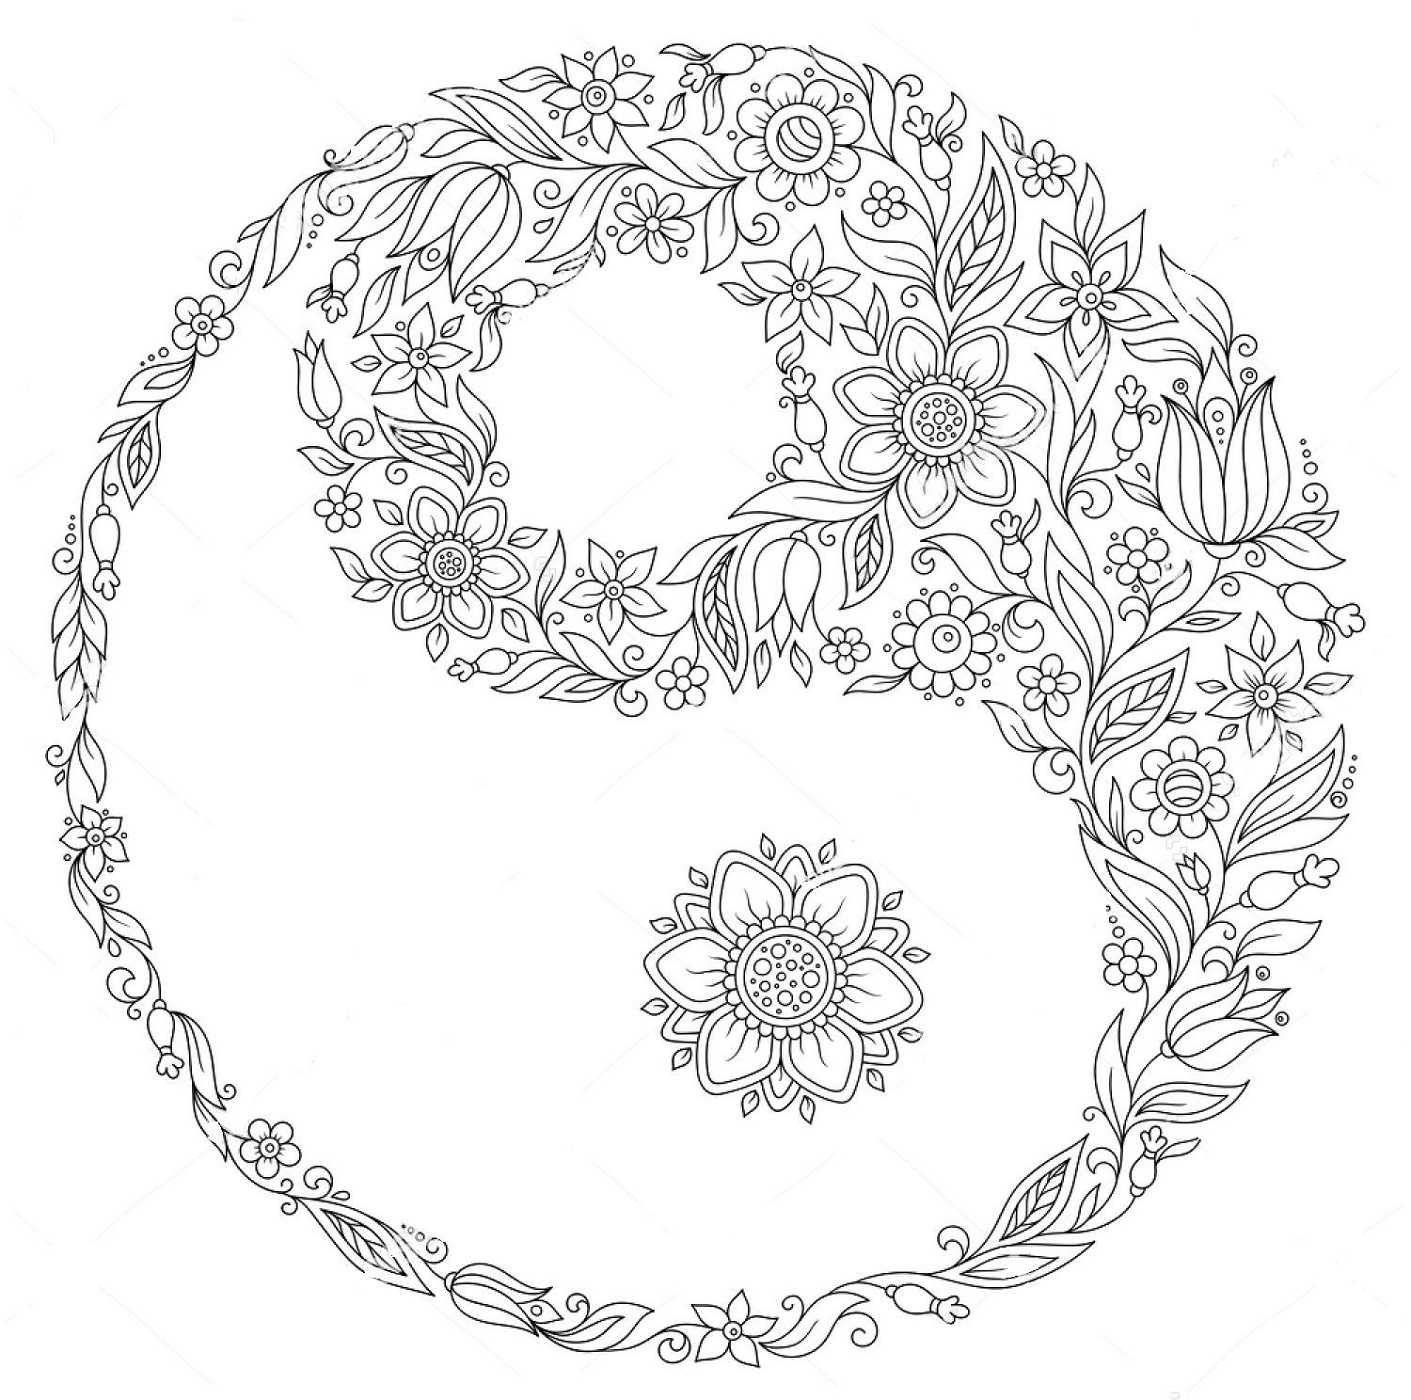 Yin Yang Coloring Pages Zentangle